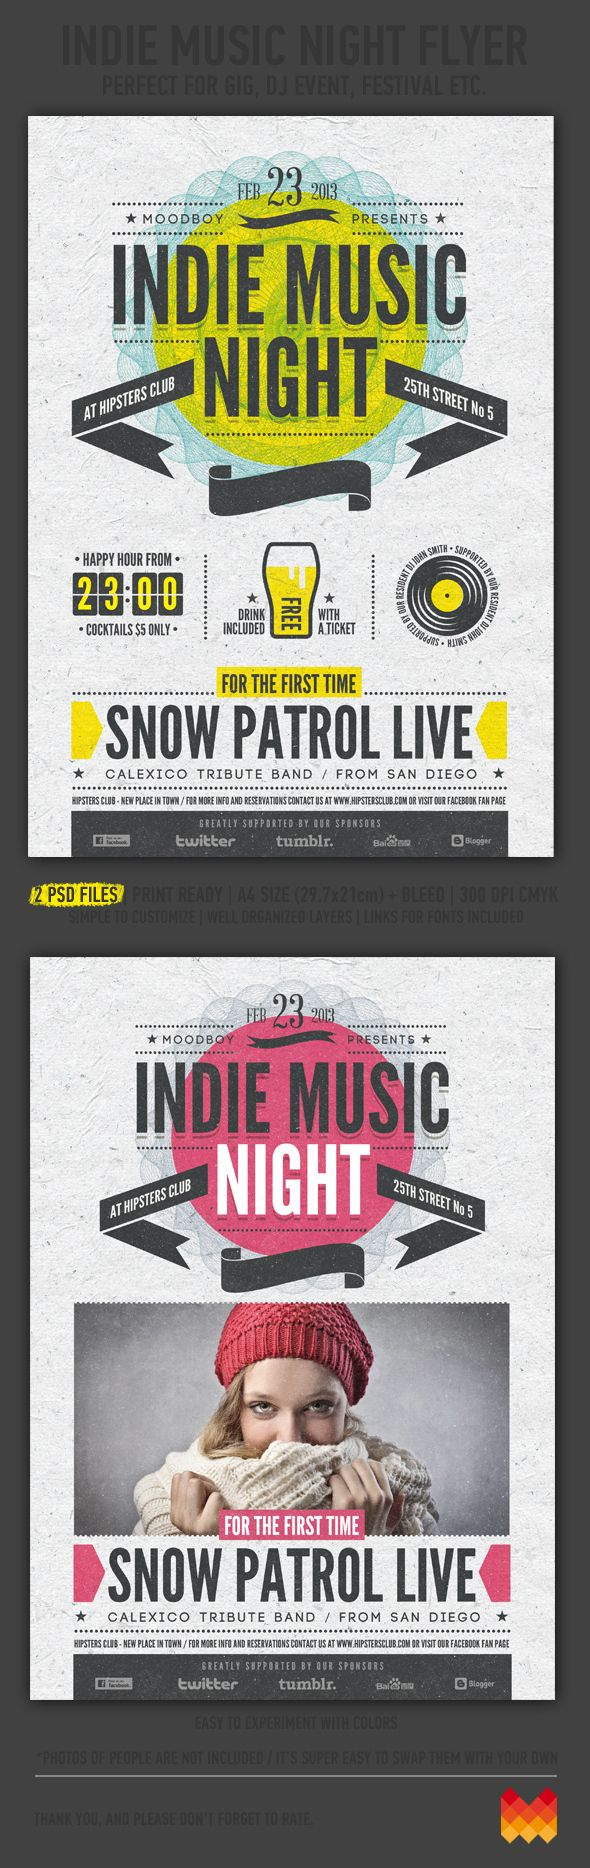 Indie Music Night Flyer/Poster on Behance